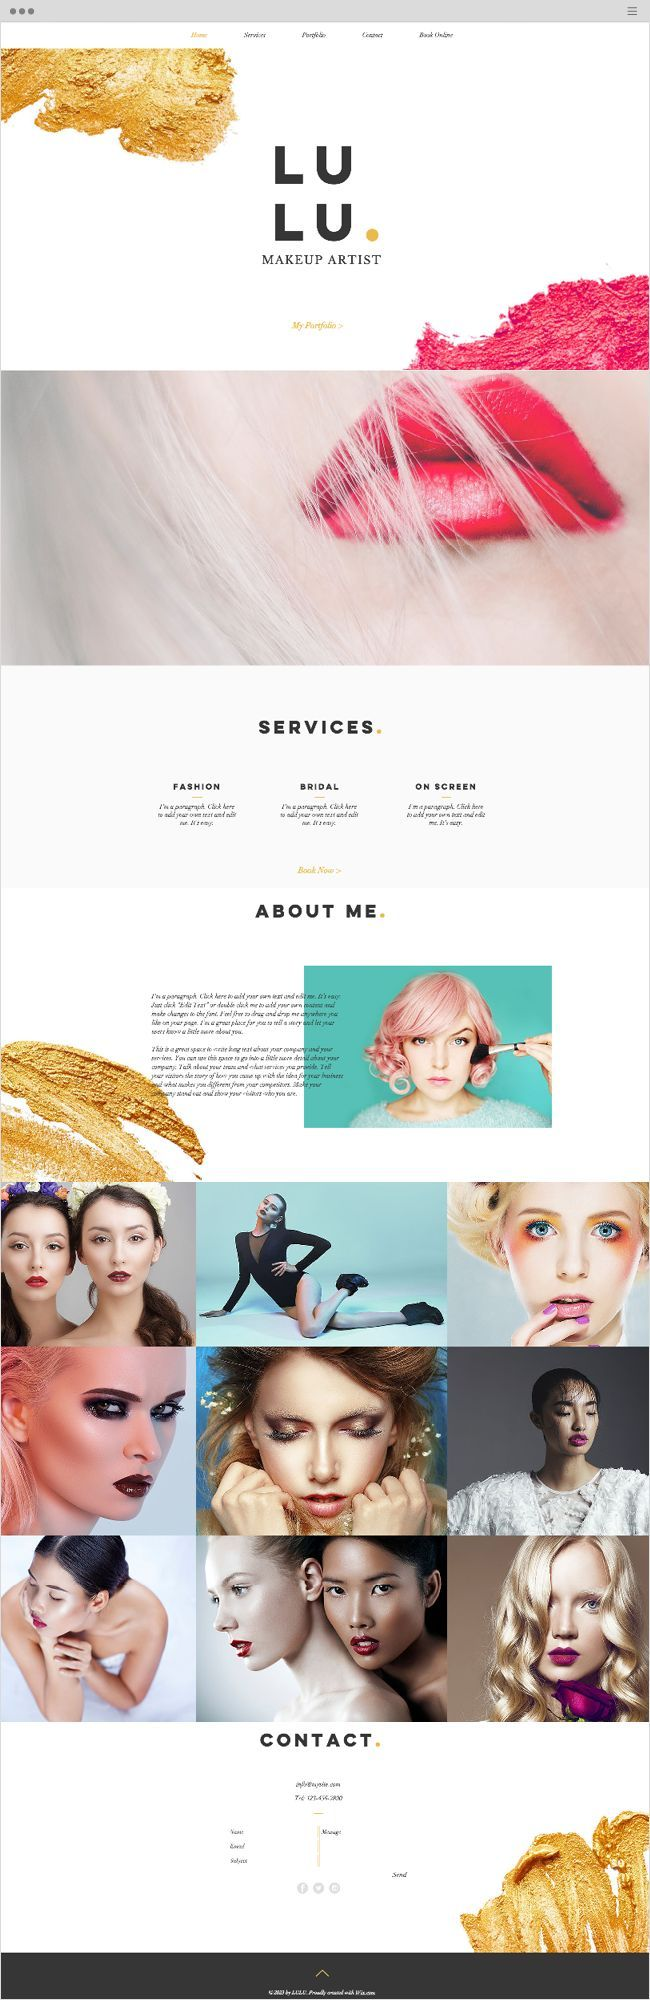 Check out these 15 brand new templates and find the one that speaks to you most!